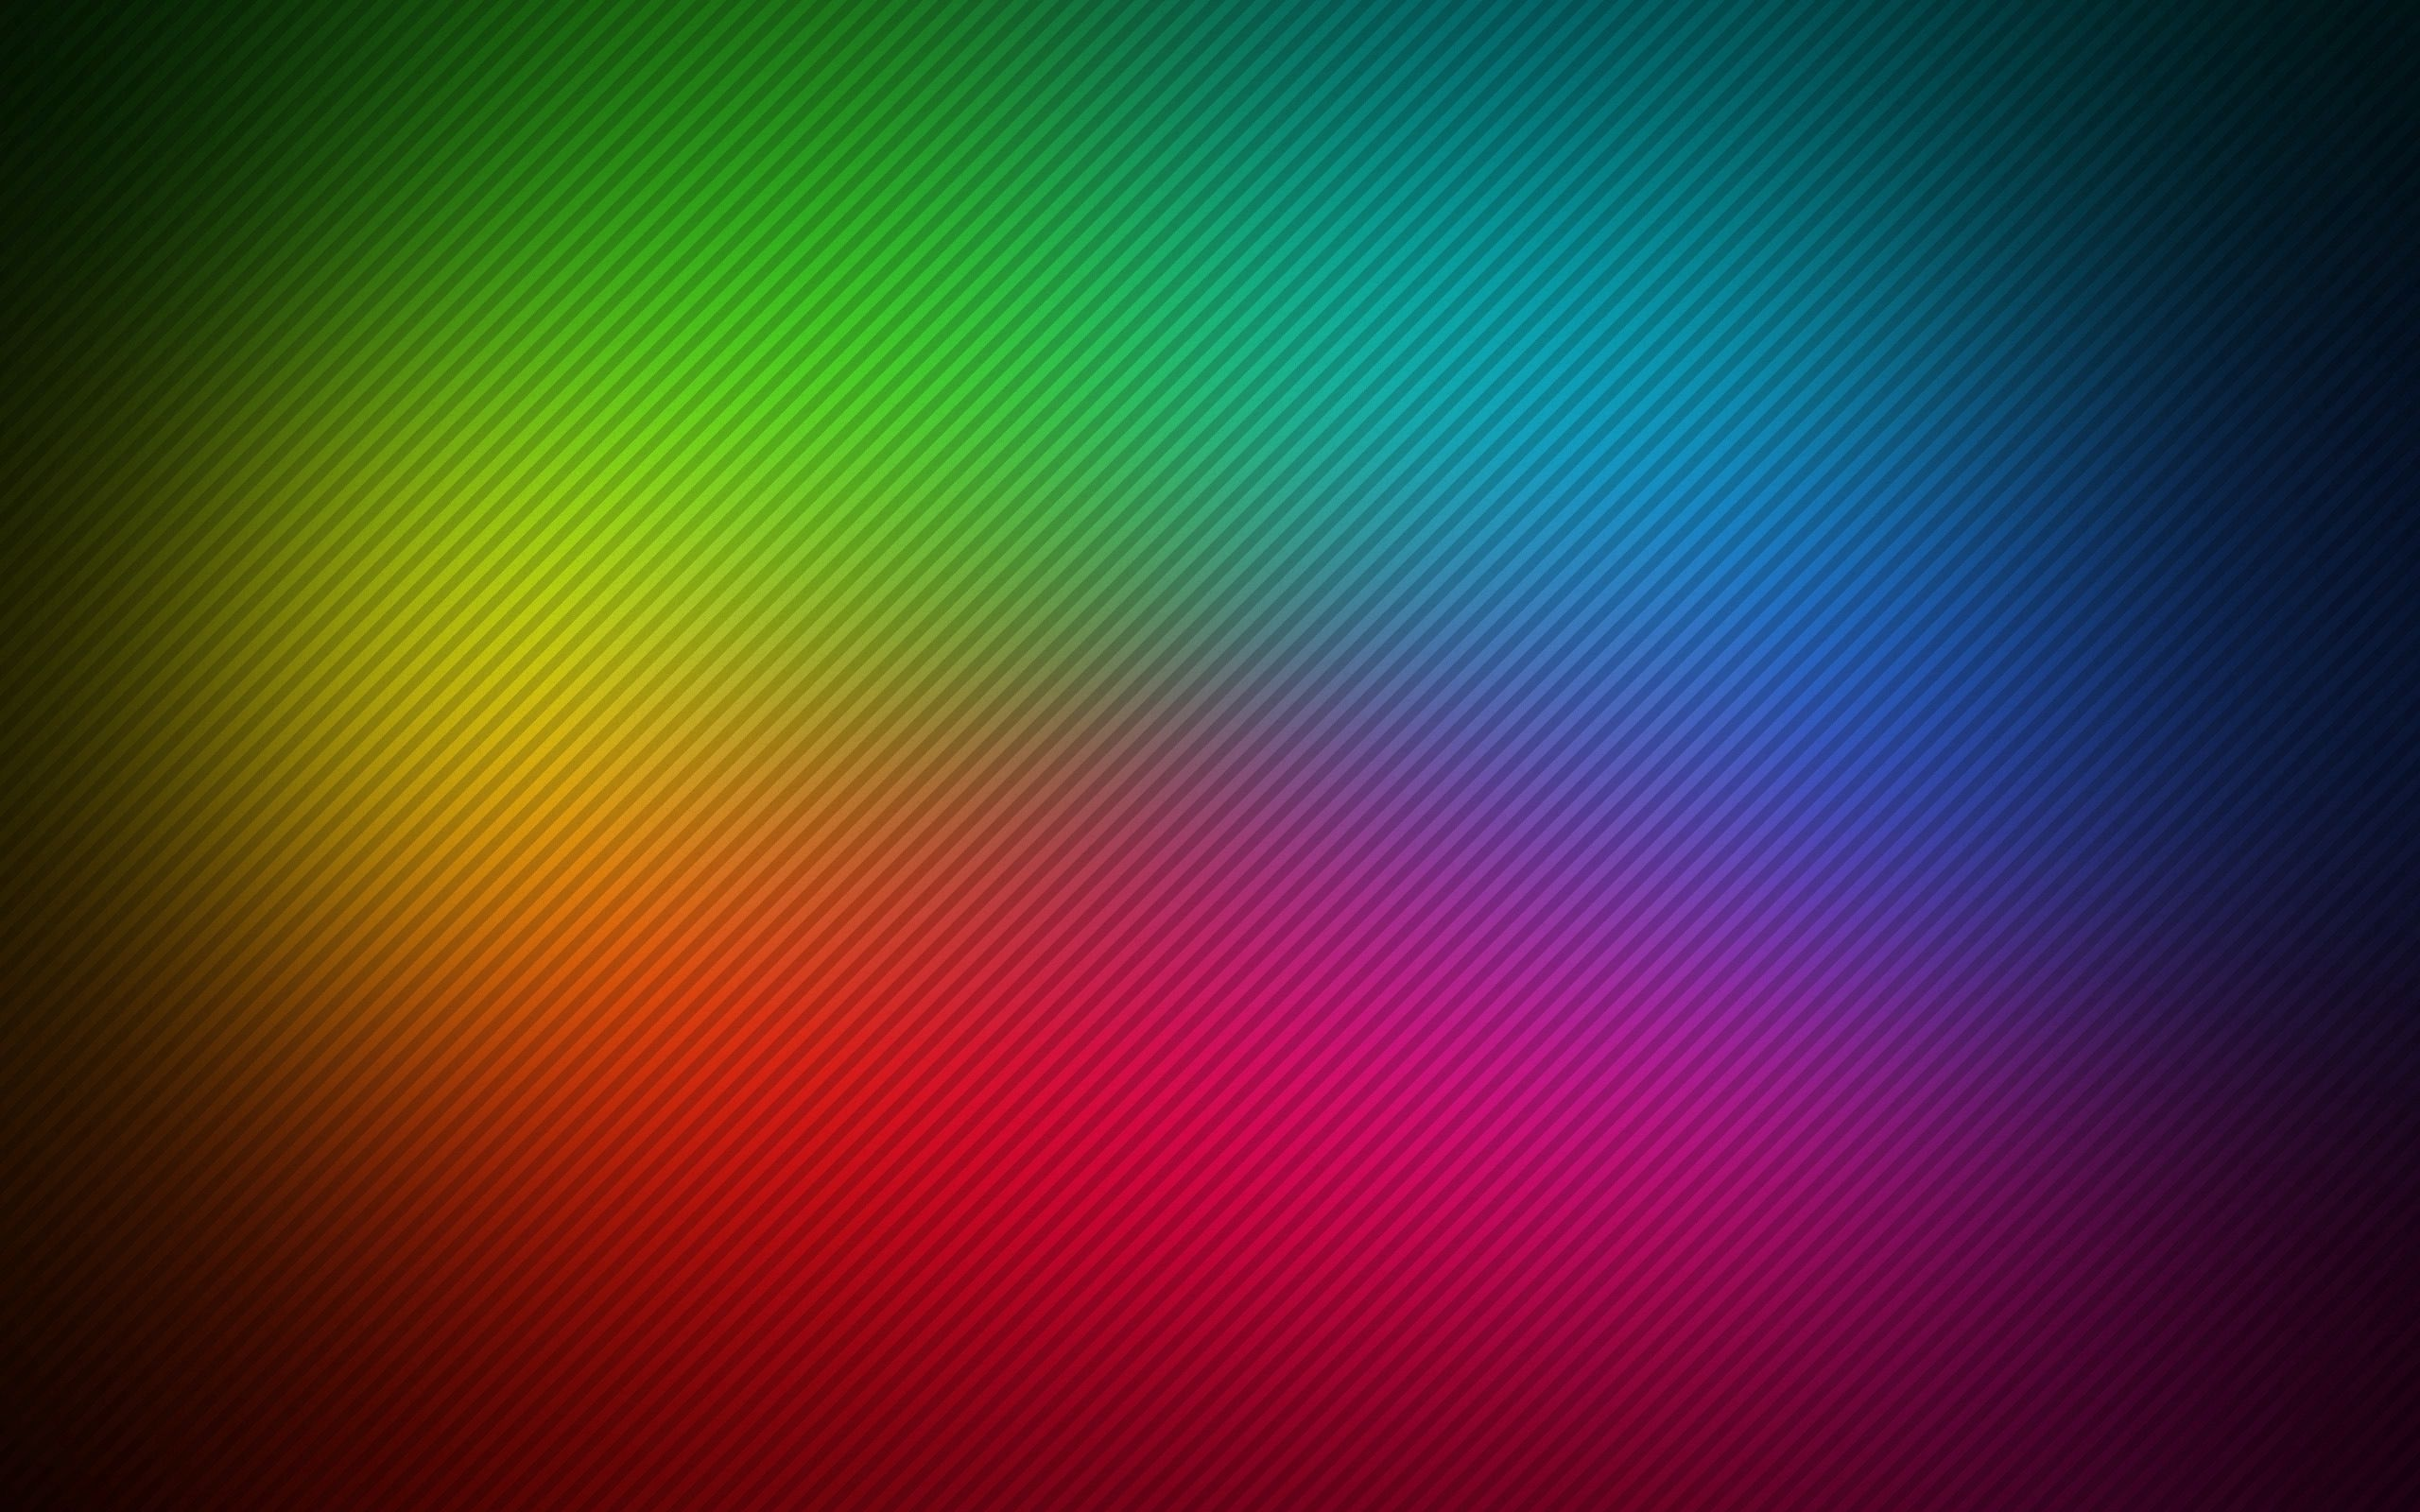 89933 download wallpaper Surface, Background, Texture, Textures, Stains, Spots, Colorful, Colourful screensavers and pictures for free